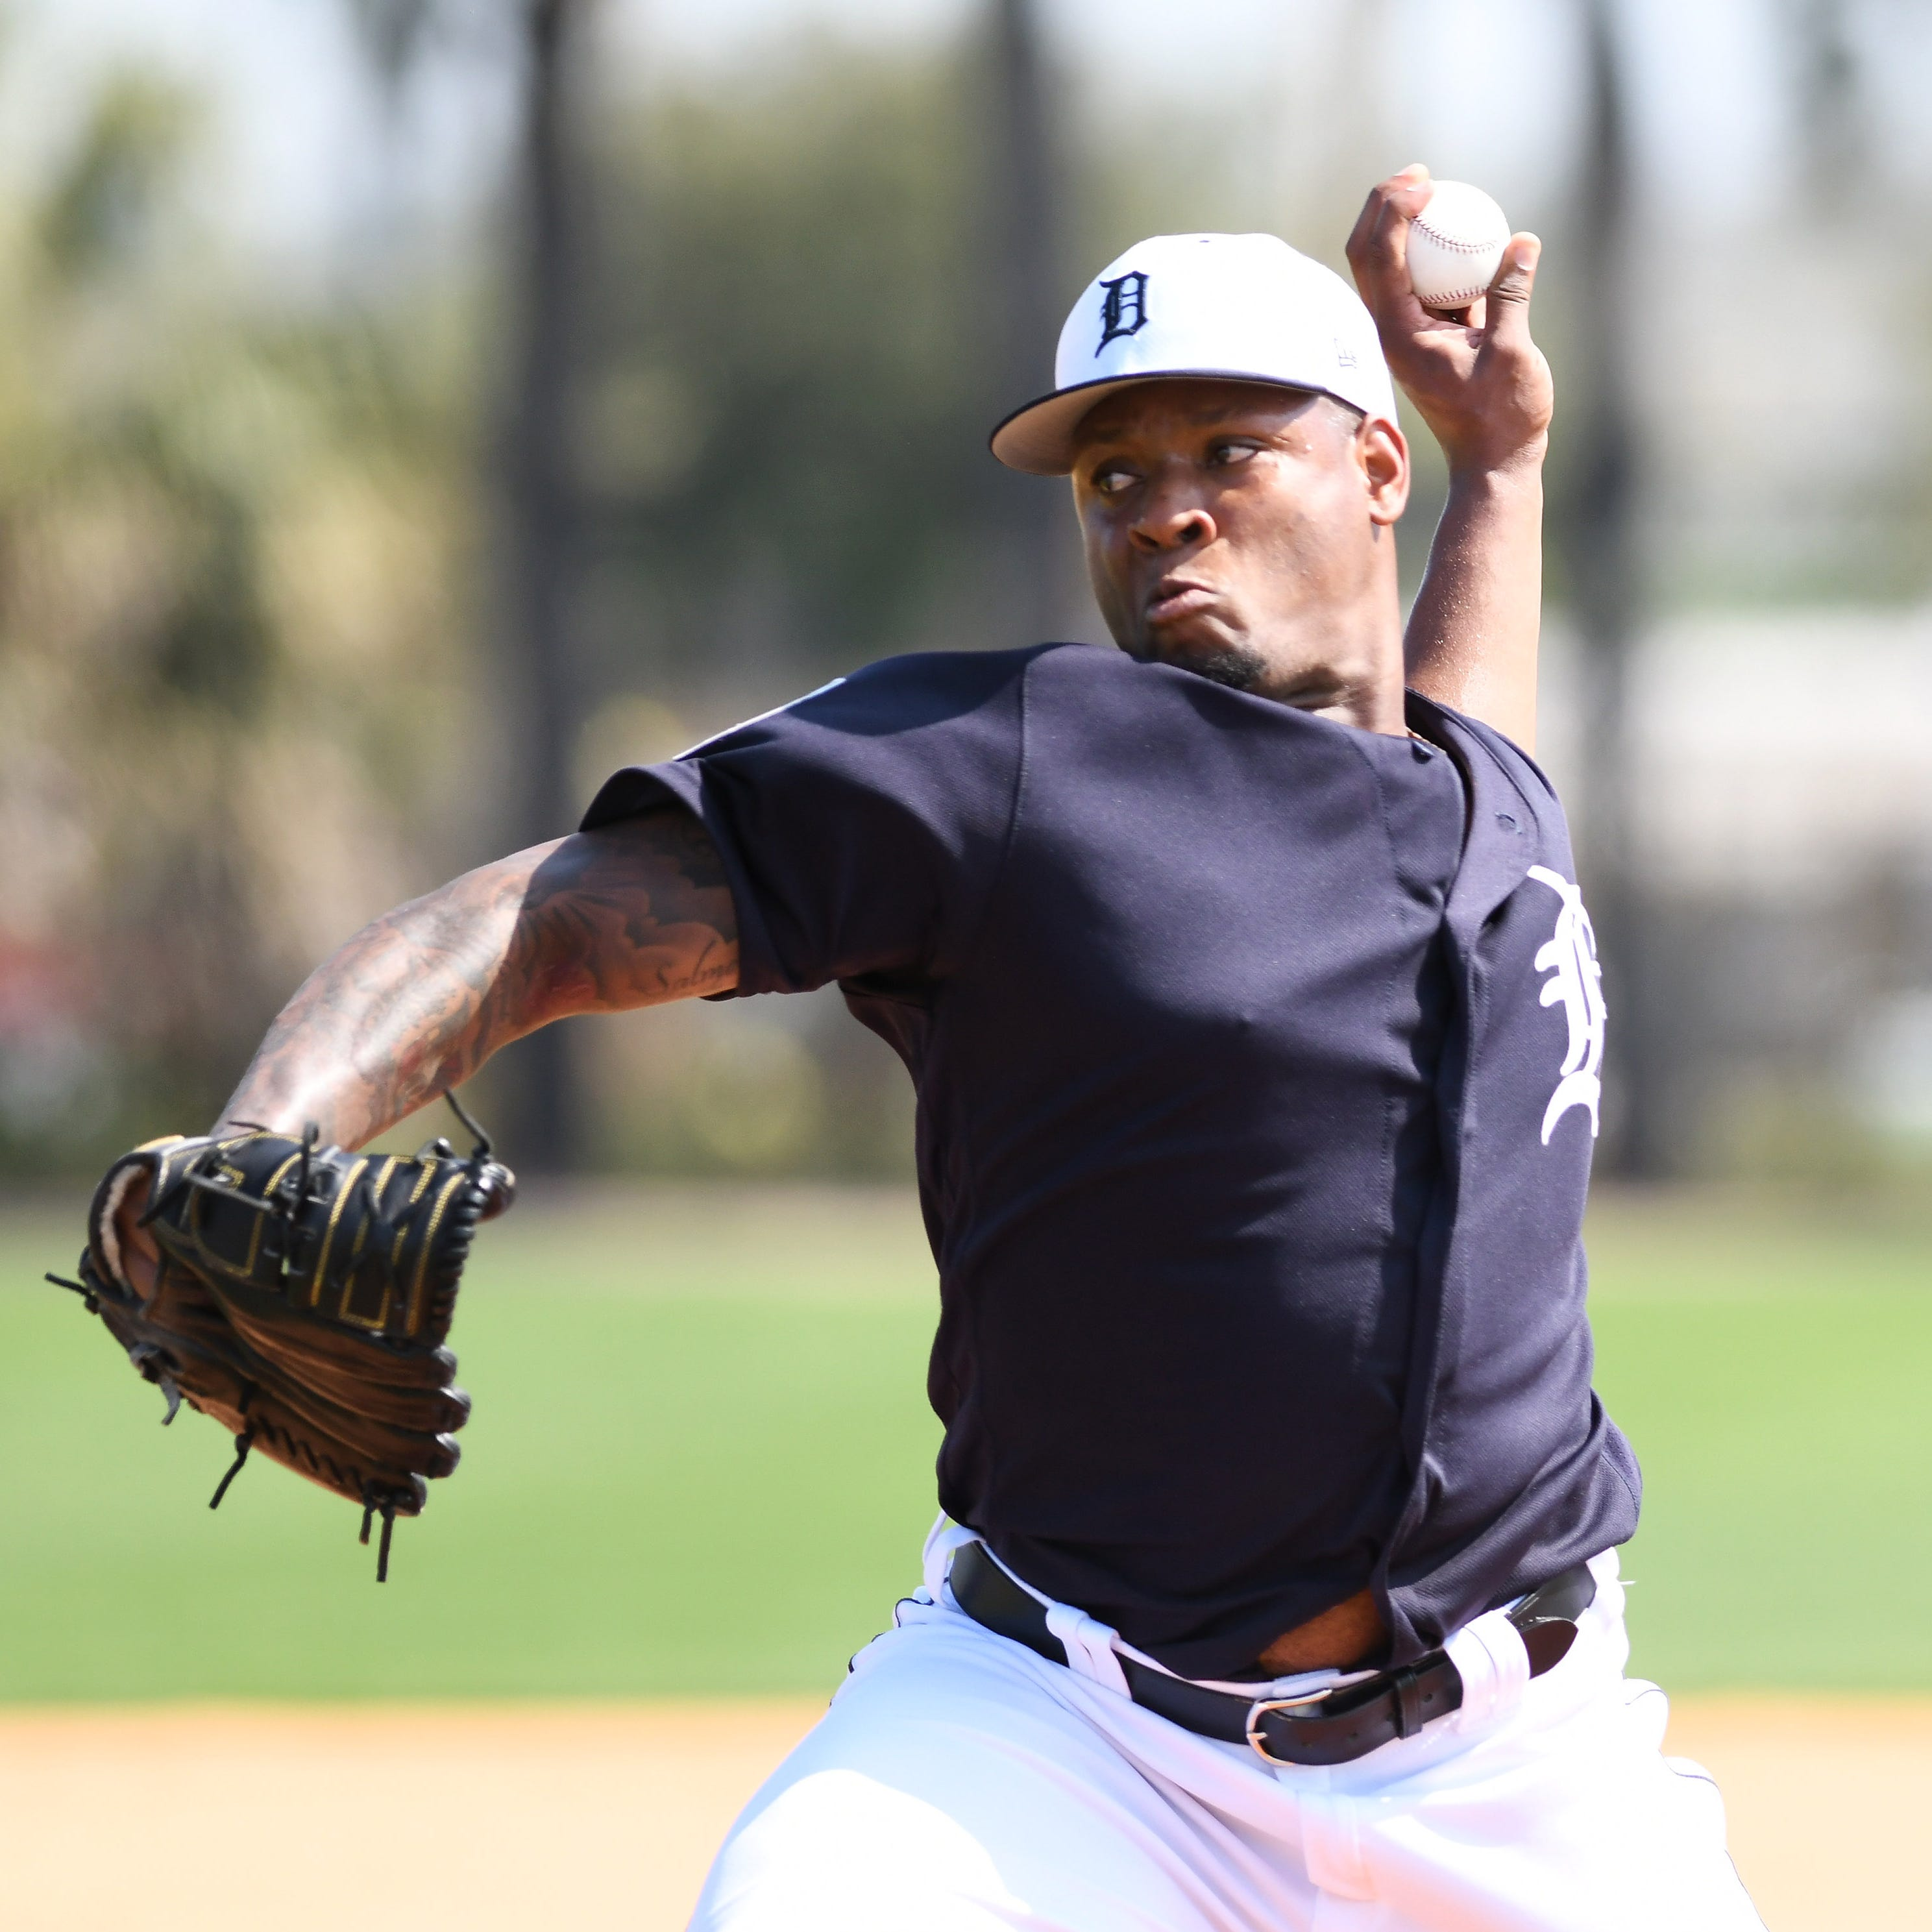 Tigers lefty prospect Gregory Soto being promoted from Erie, starts Saturday